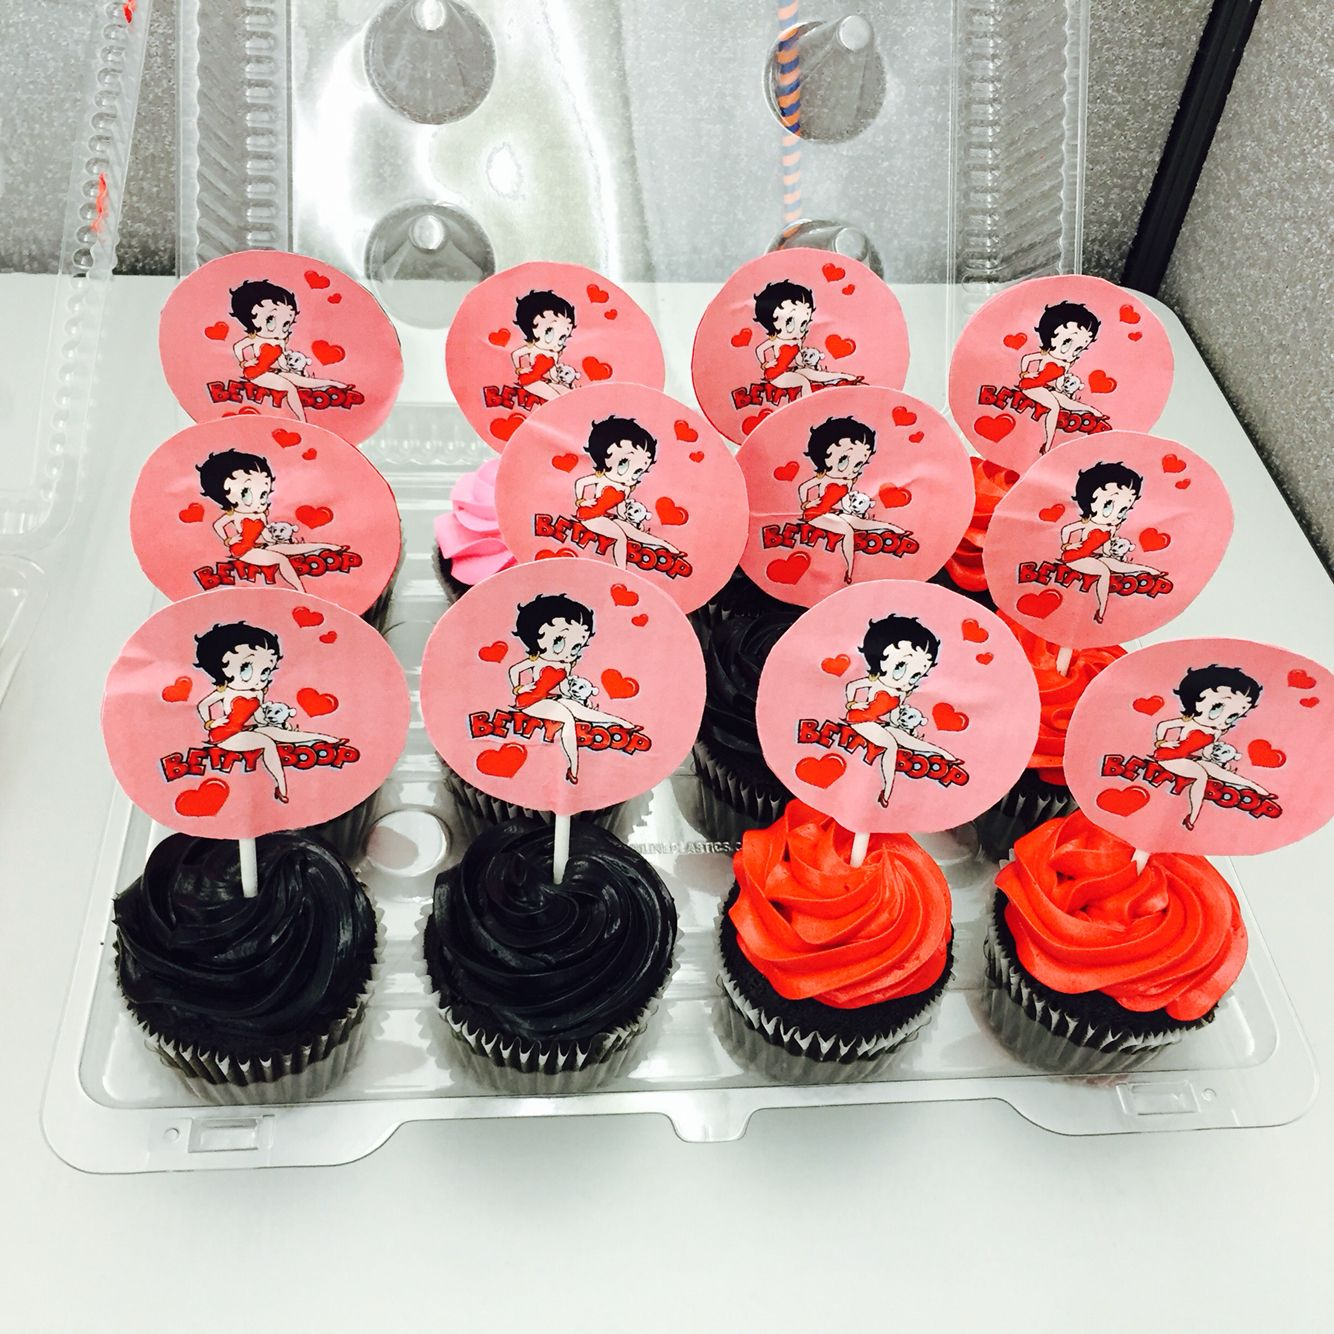 Betty Boop Cupcakes I Made For A Coworker Book Cakes Baked Drink Mini Cupcakes